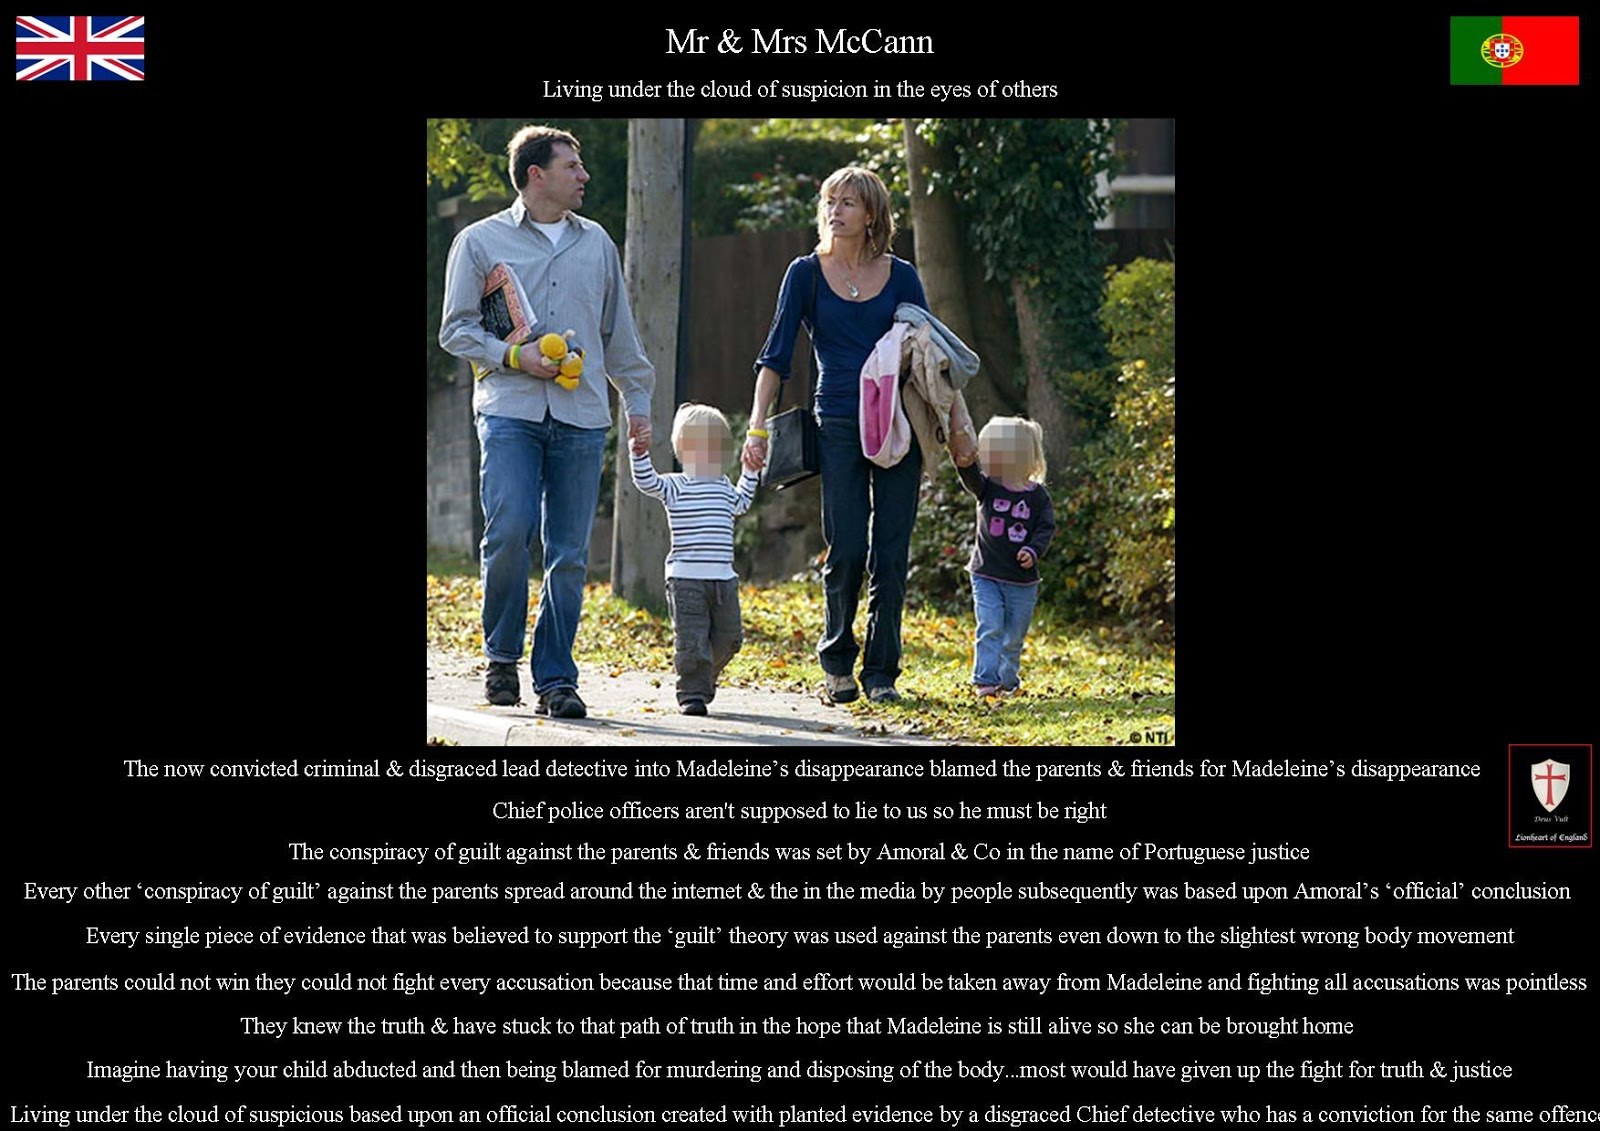 Madeleine McCann Theory: Madeleine's parents & The cloud of suspicion